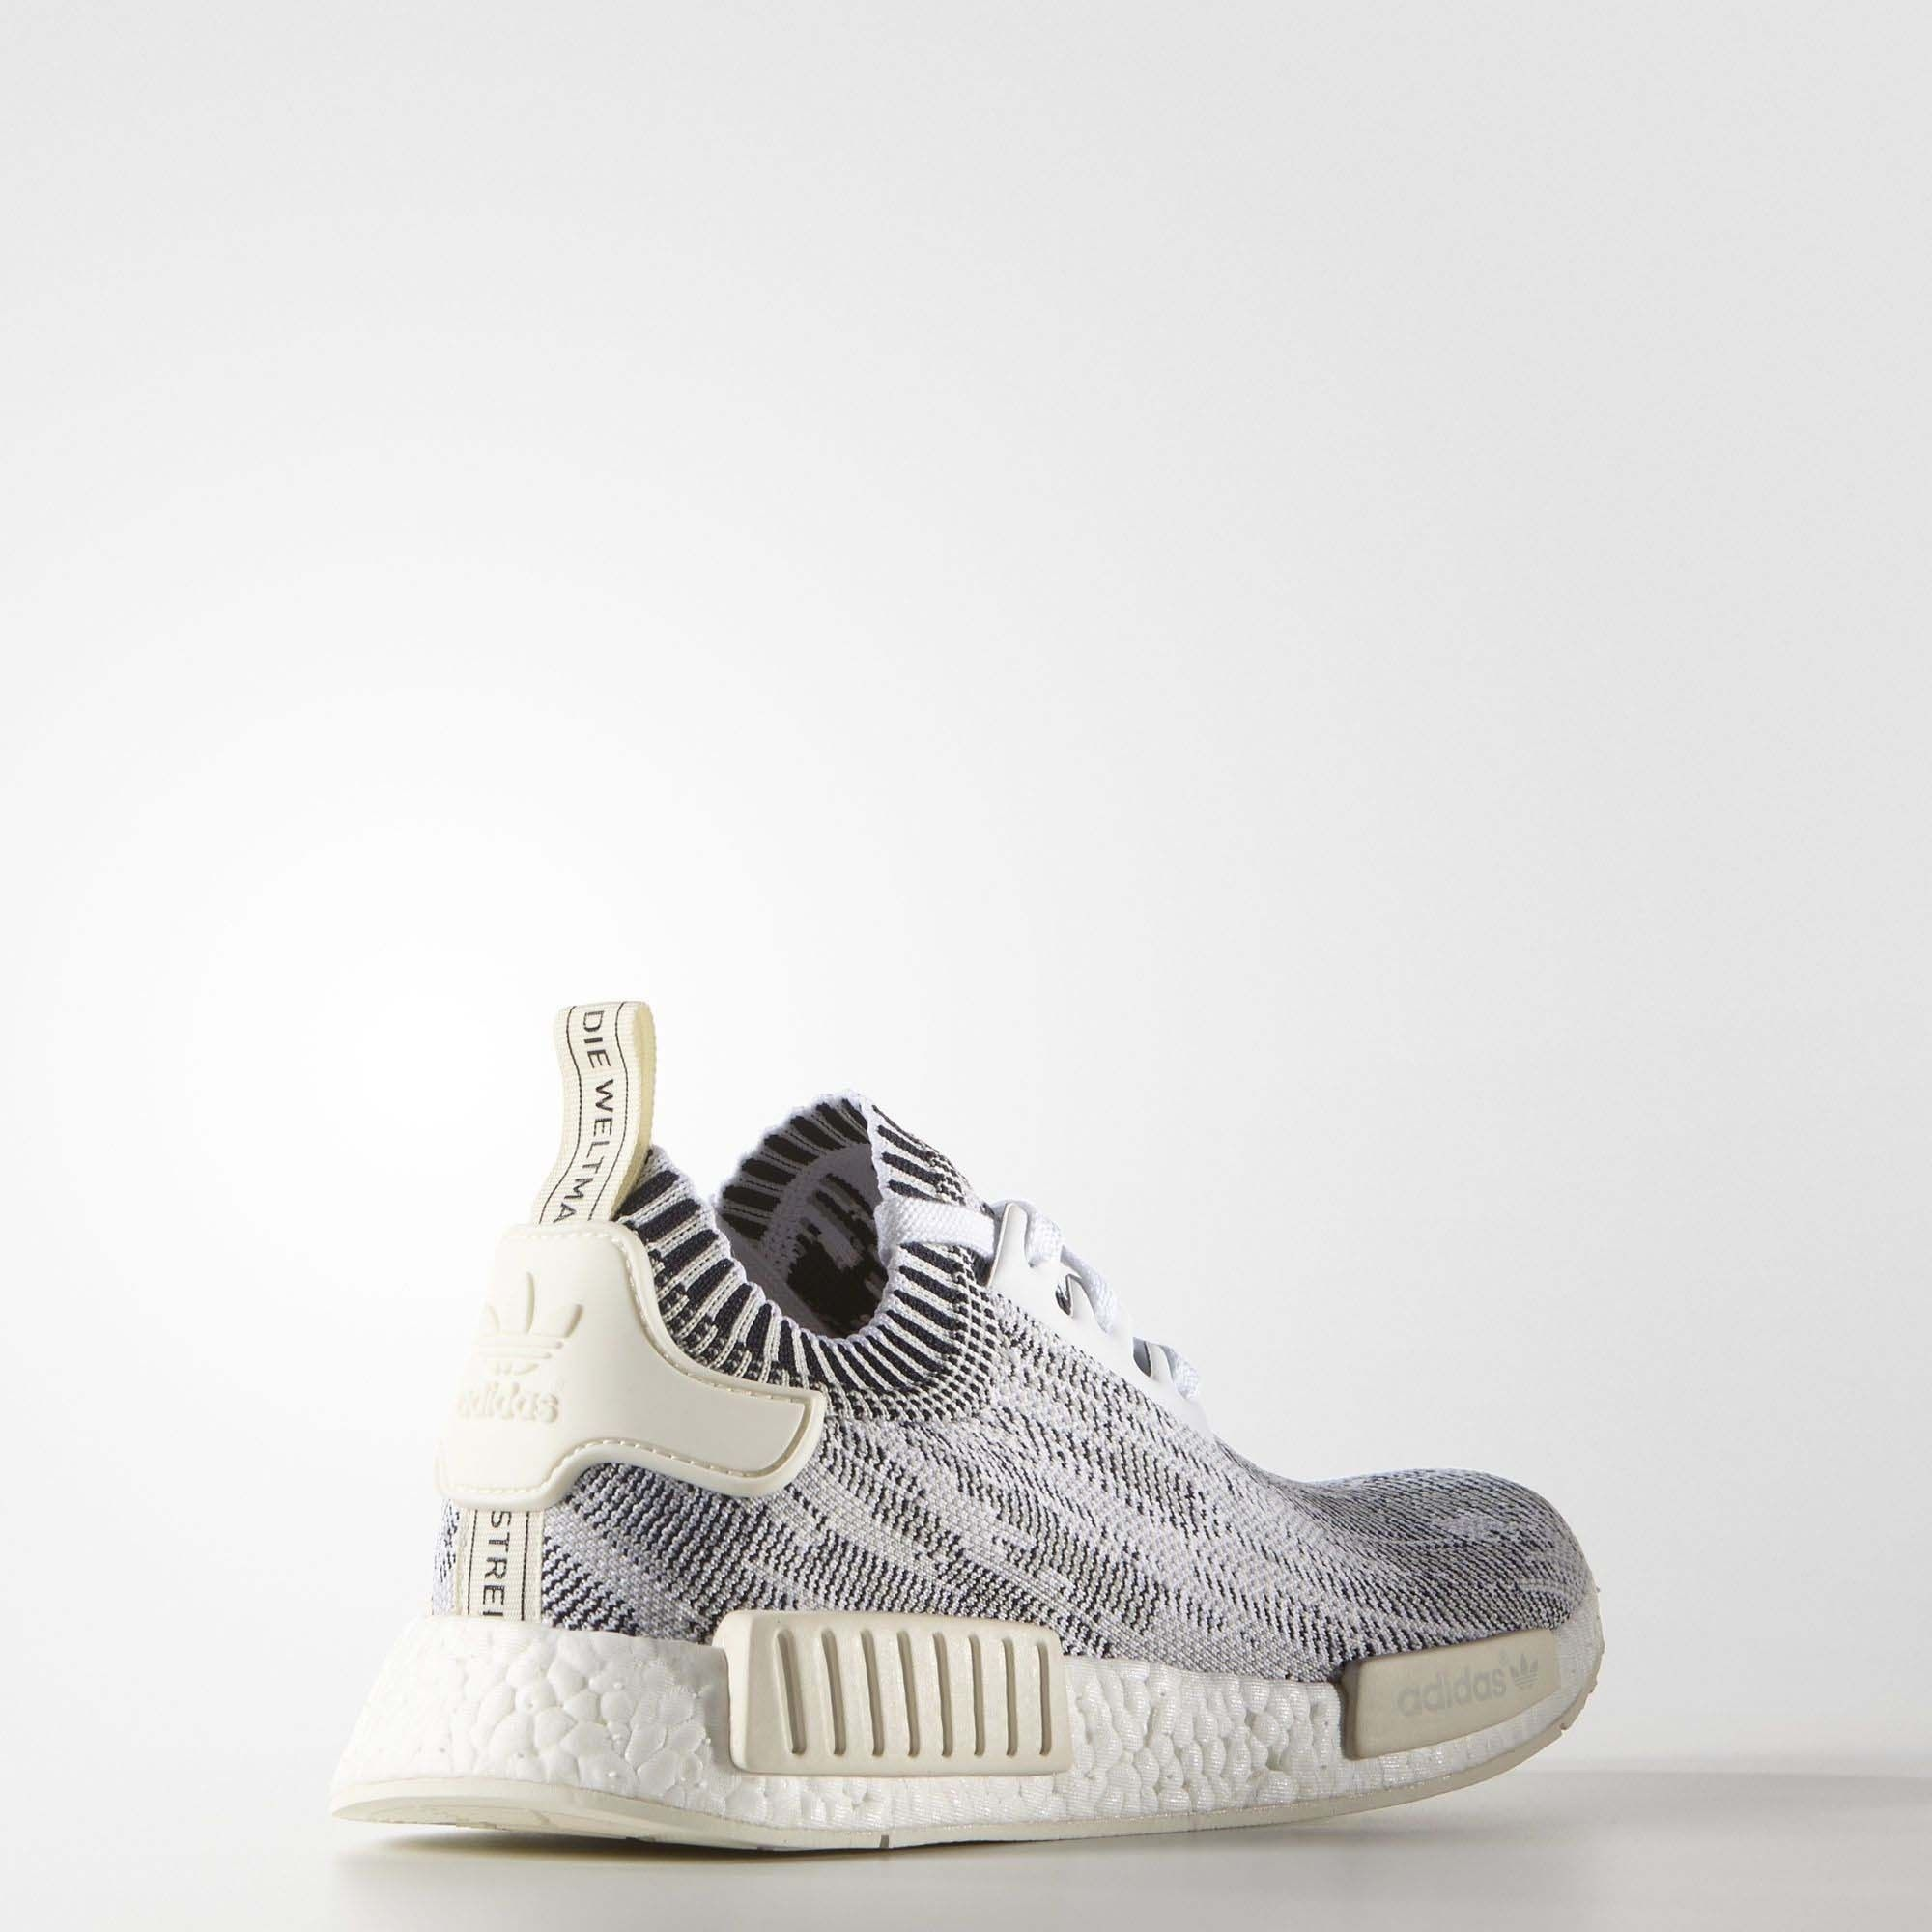 Adidas NMD_R1 Primeknit White Camo - Mens Legend BlueClear OnyxWhite1 being  unfaithful limited offer,no. Shoe Sales OnlineMens ...